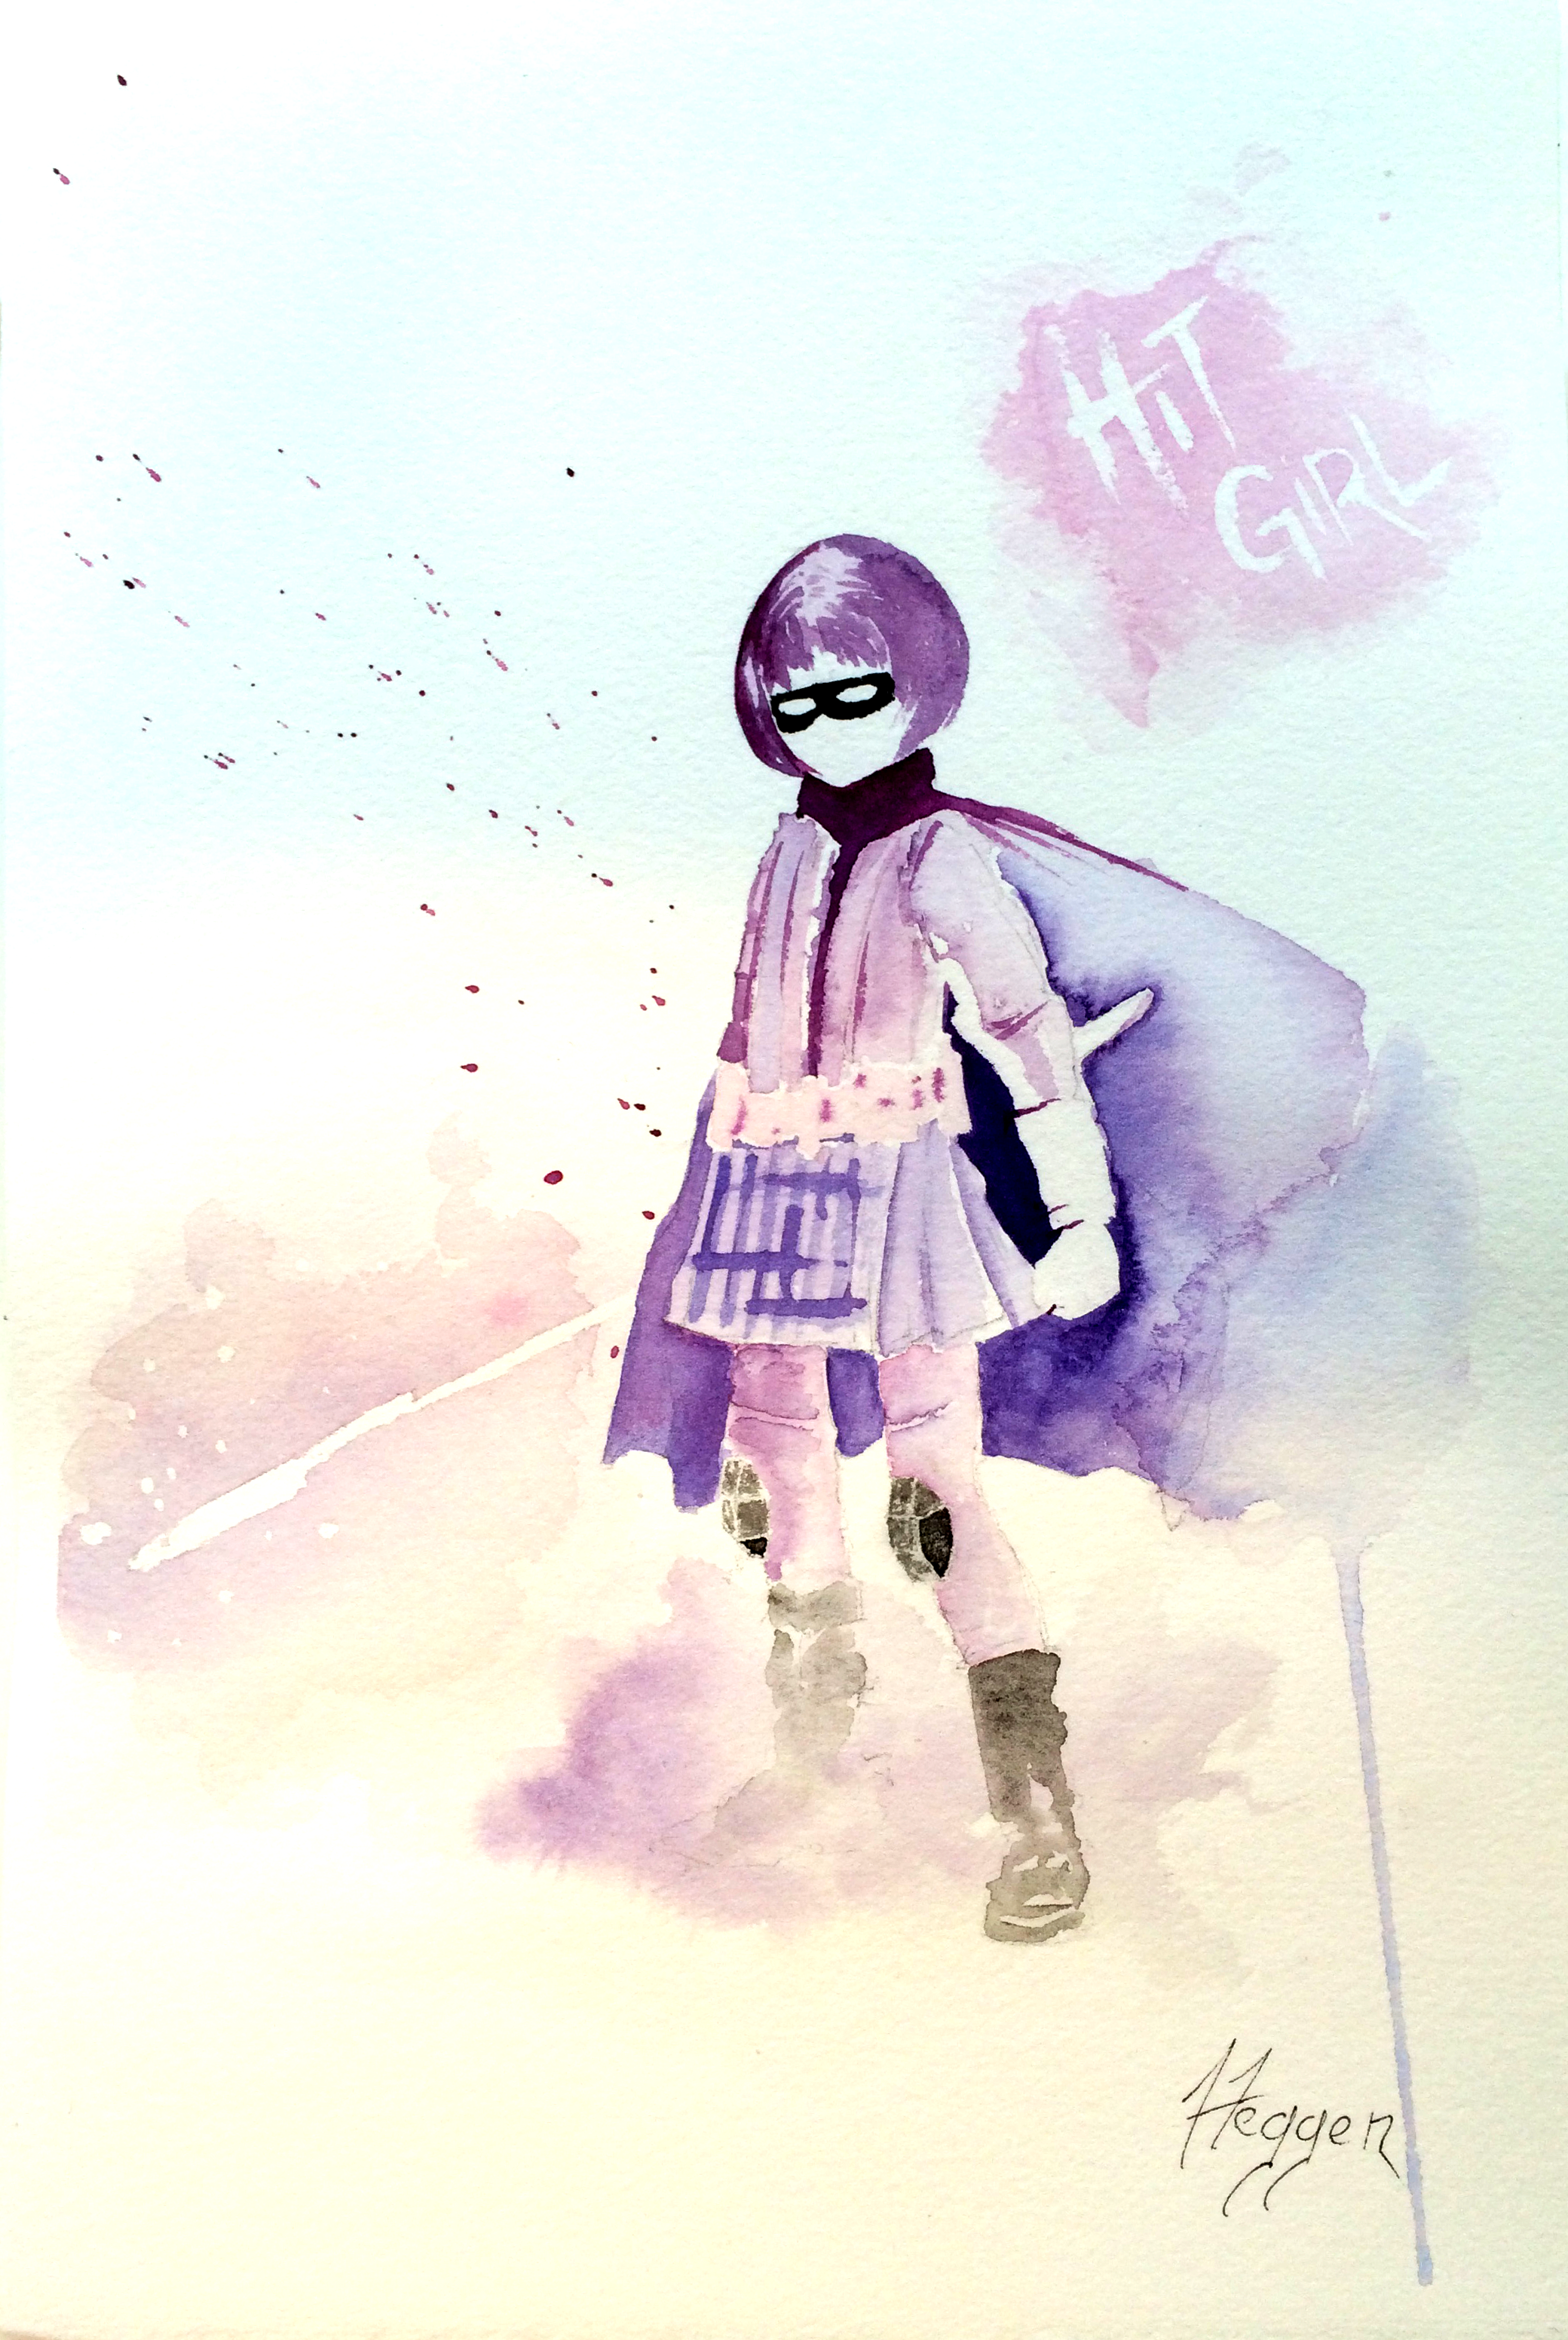 Hit-Girl greets you.